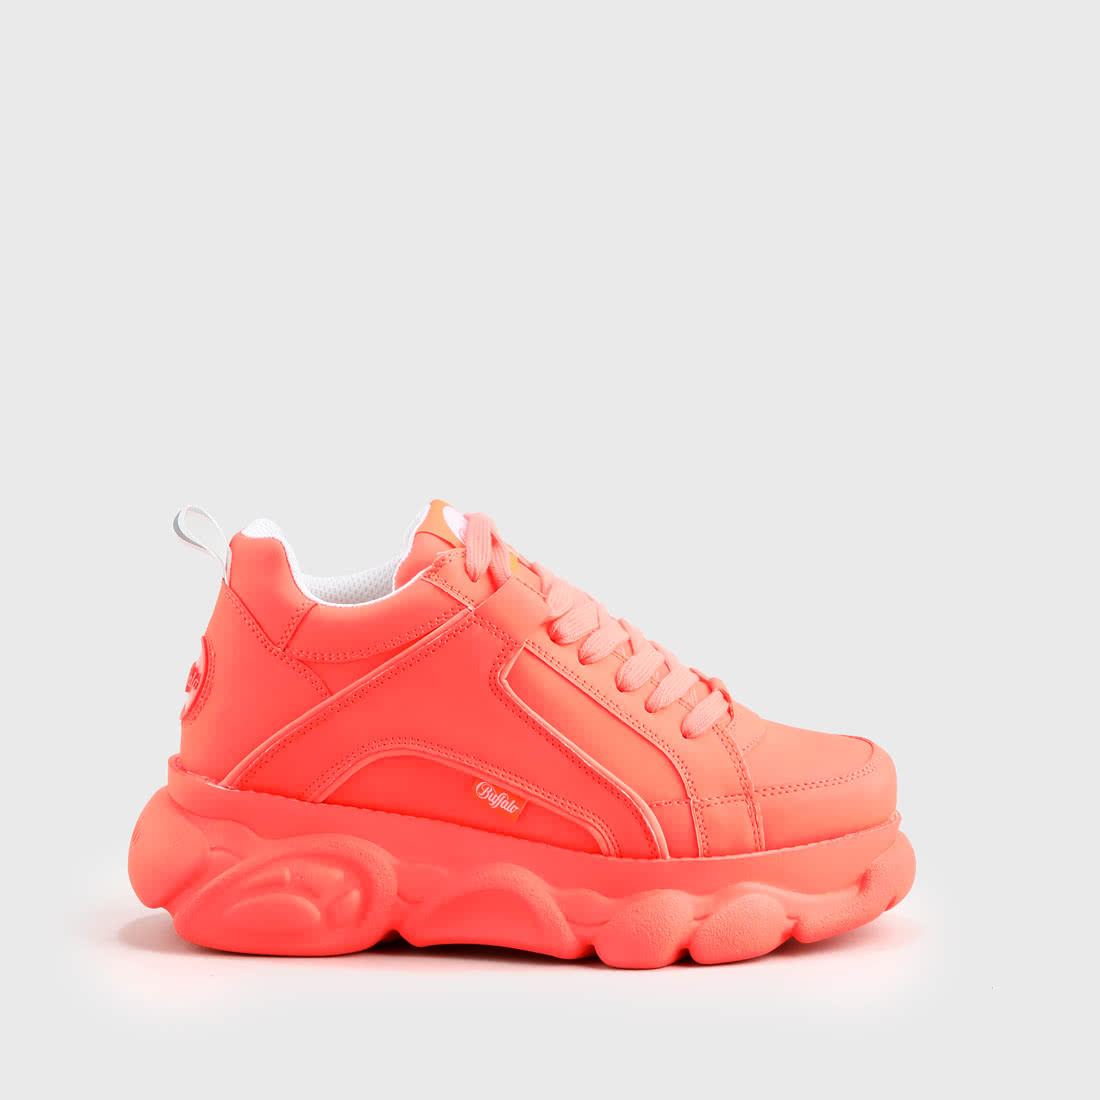 ORANGE JUNGLE | Online Sneaker Shop